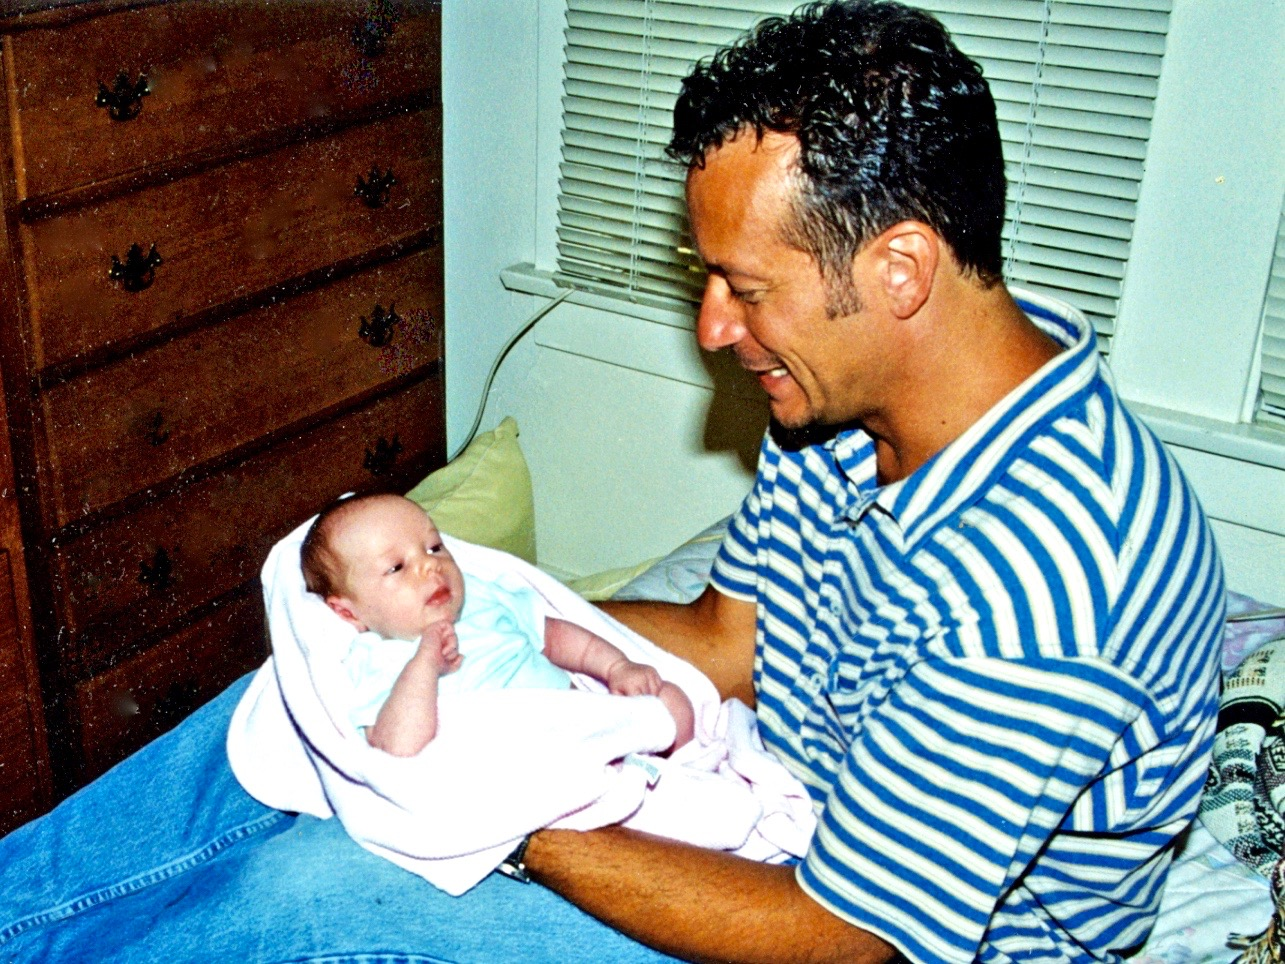 Man in the 1990s holding baby girl